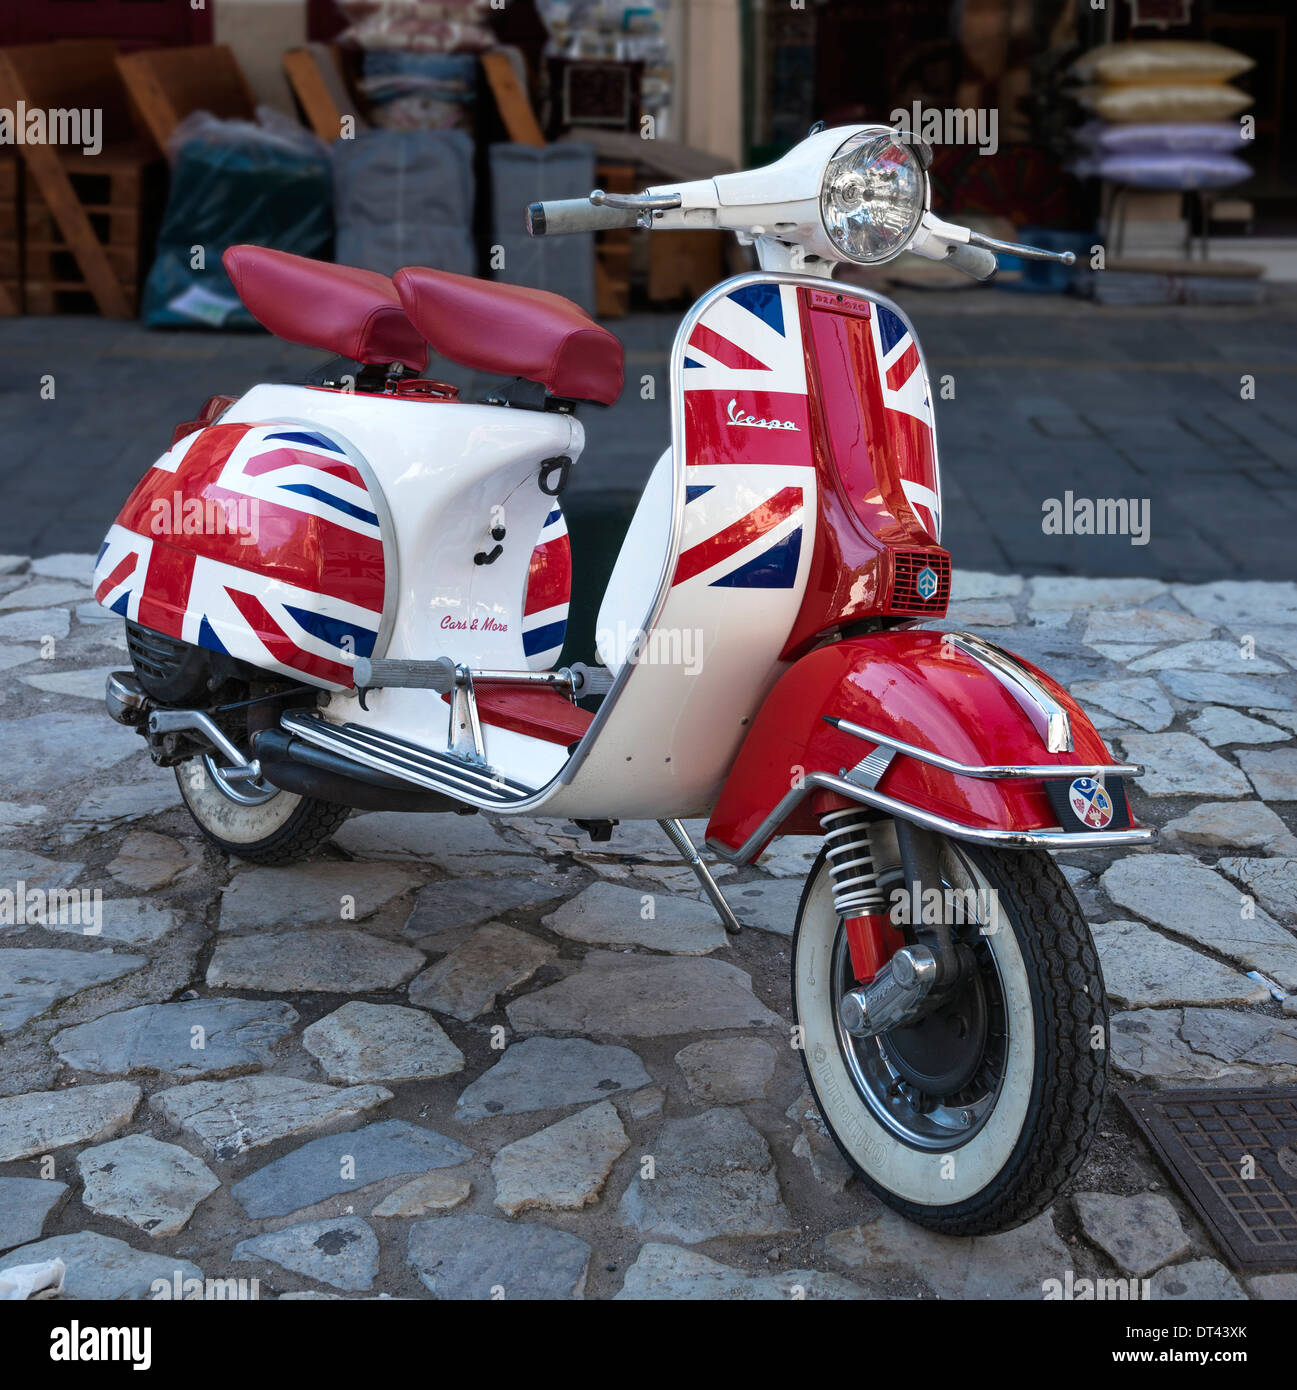 a piaggio vespa scooter, painted with the flag and colours of the